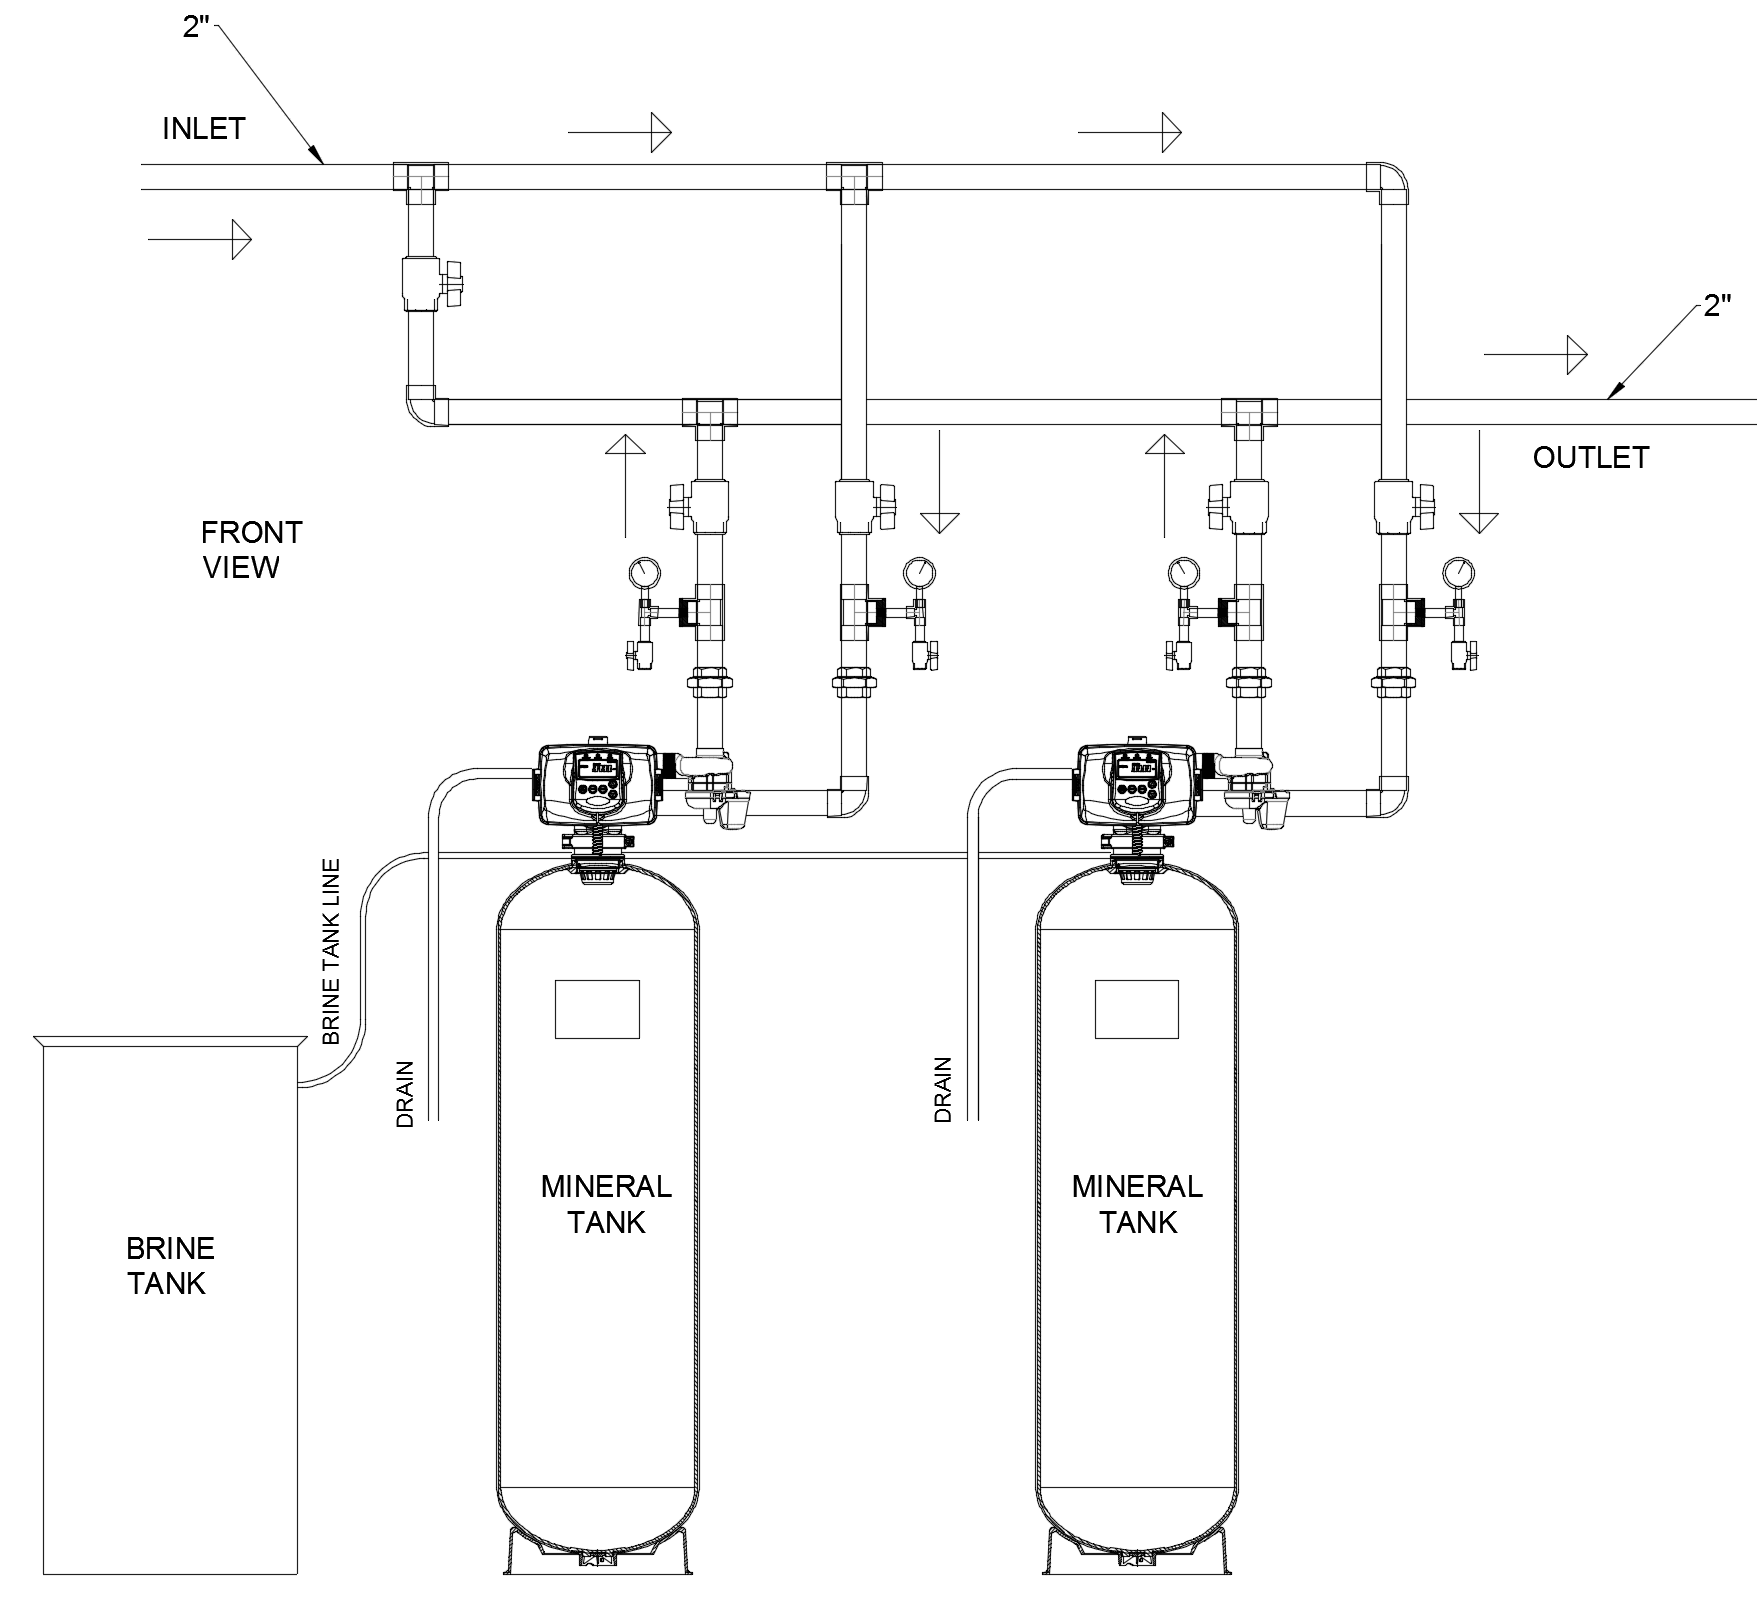 hight resolution of water softener duplex water softener diagram schema diagram preview 2 0